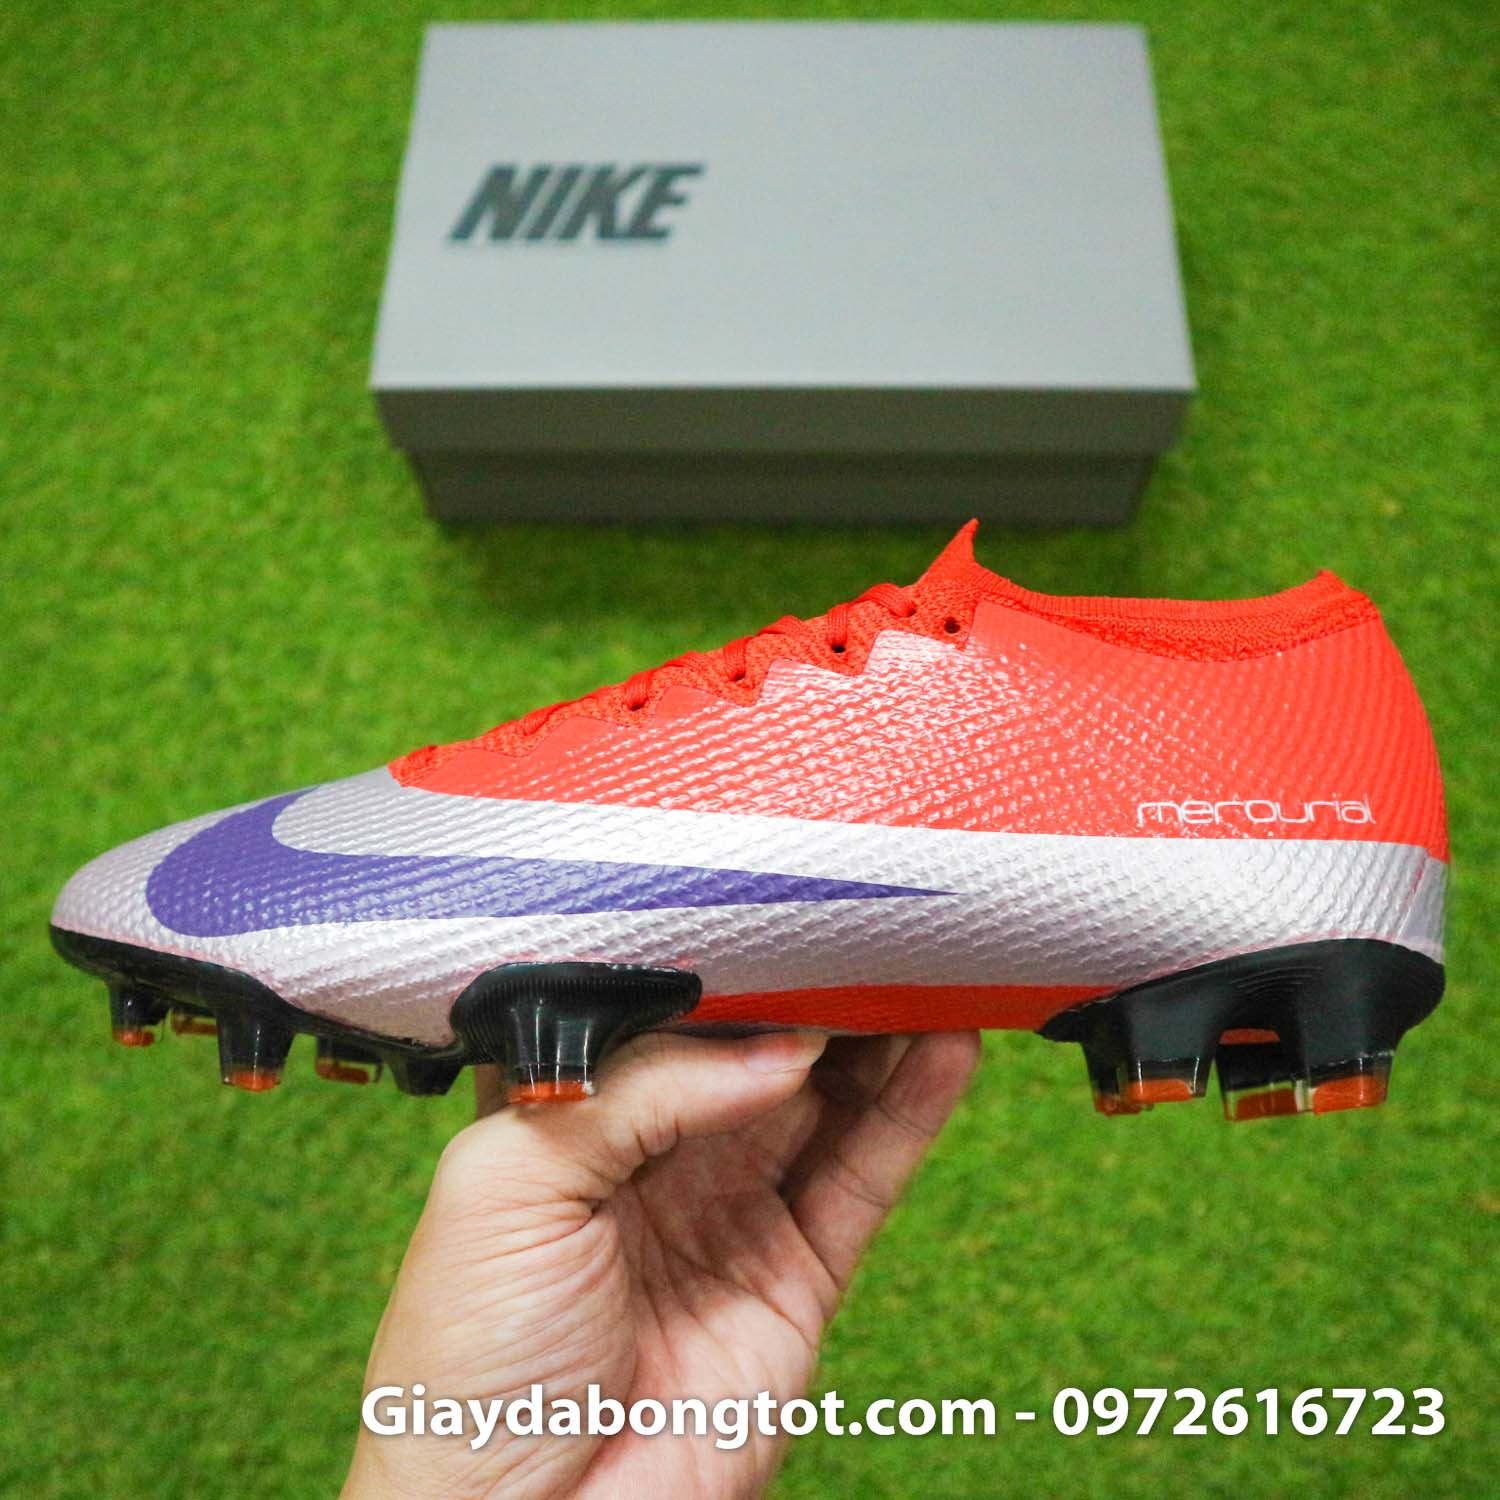 Giay bong da nike mercurial vapor 13 elite fg do bac future dna (13)